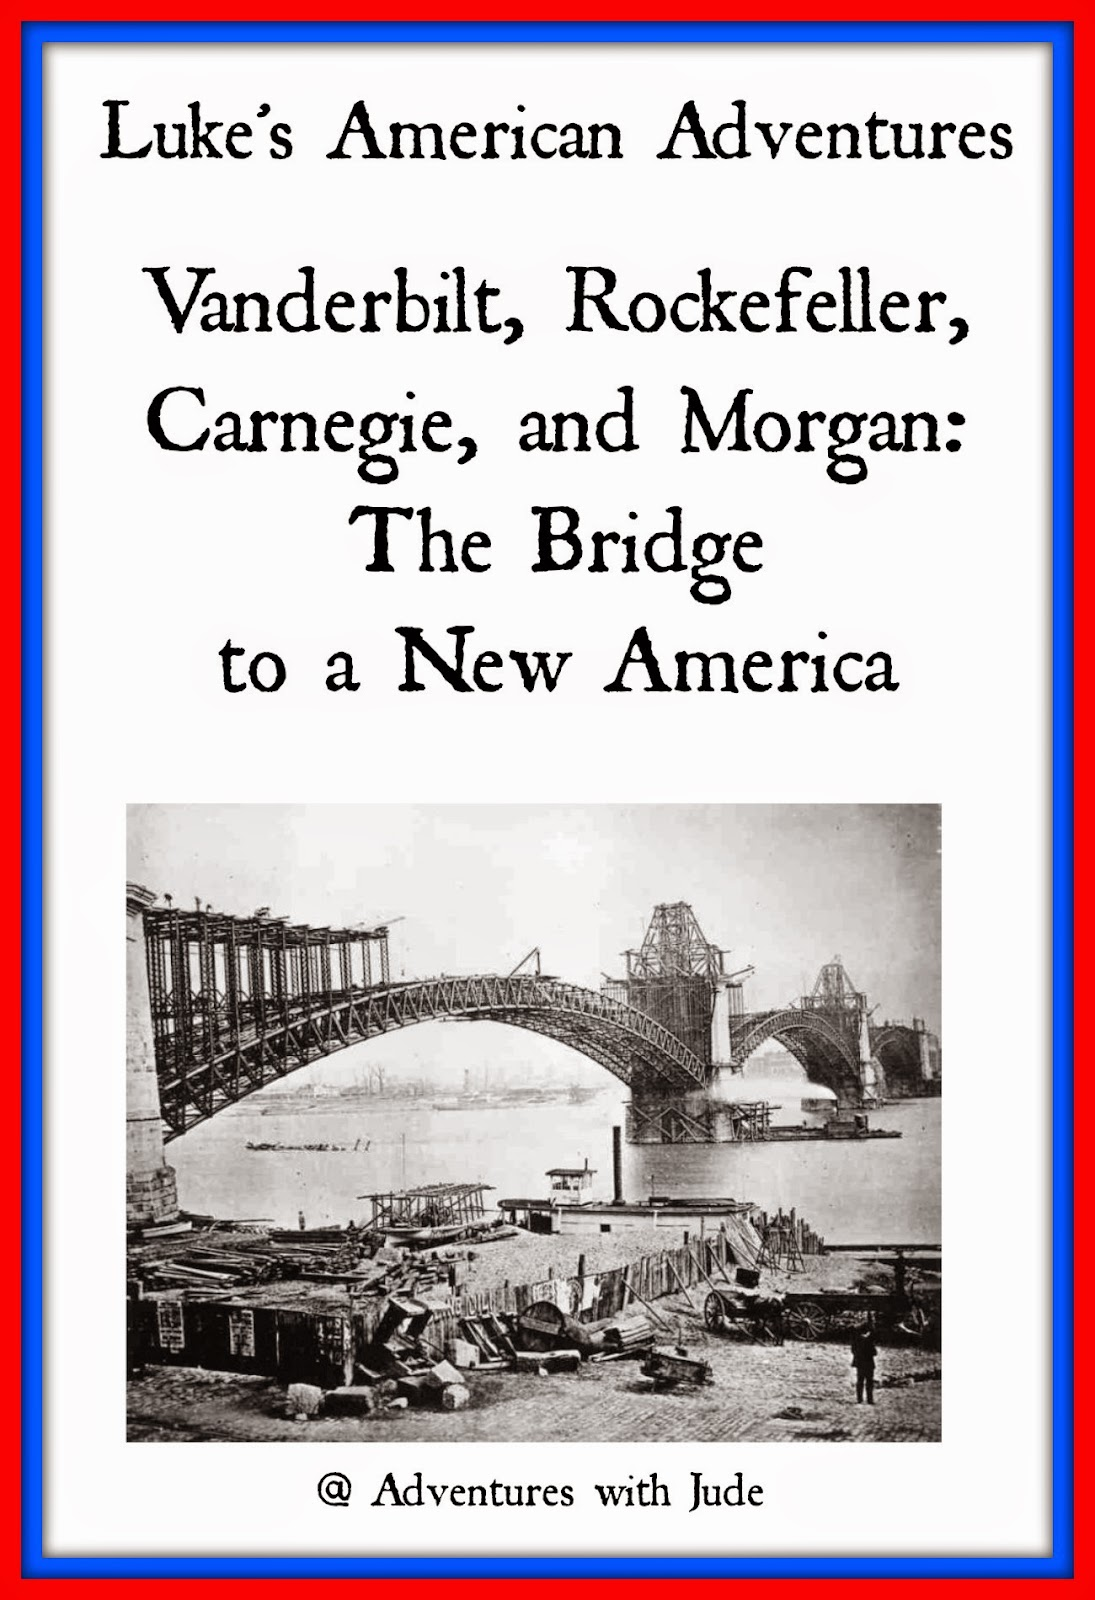 Vanderbilt, Rockefeller, Carnegie, and Morgan: The Bridge to a New America